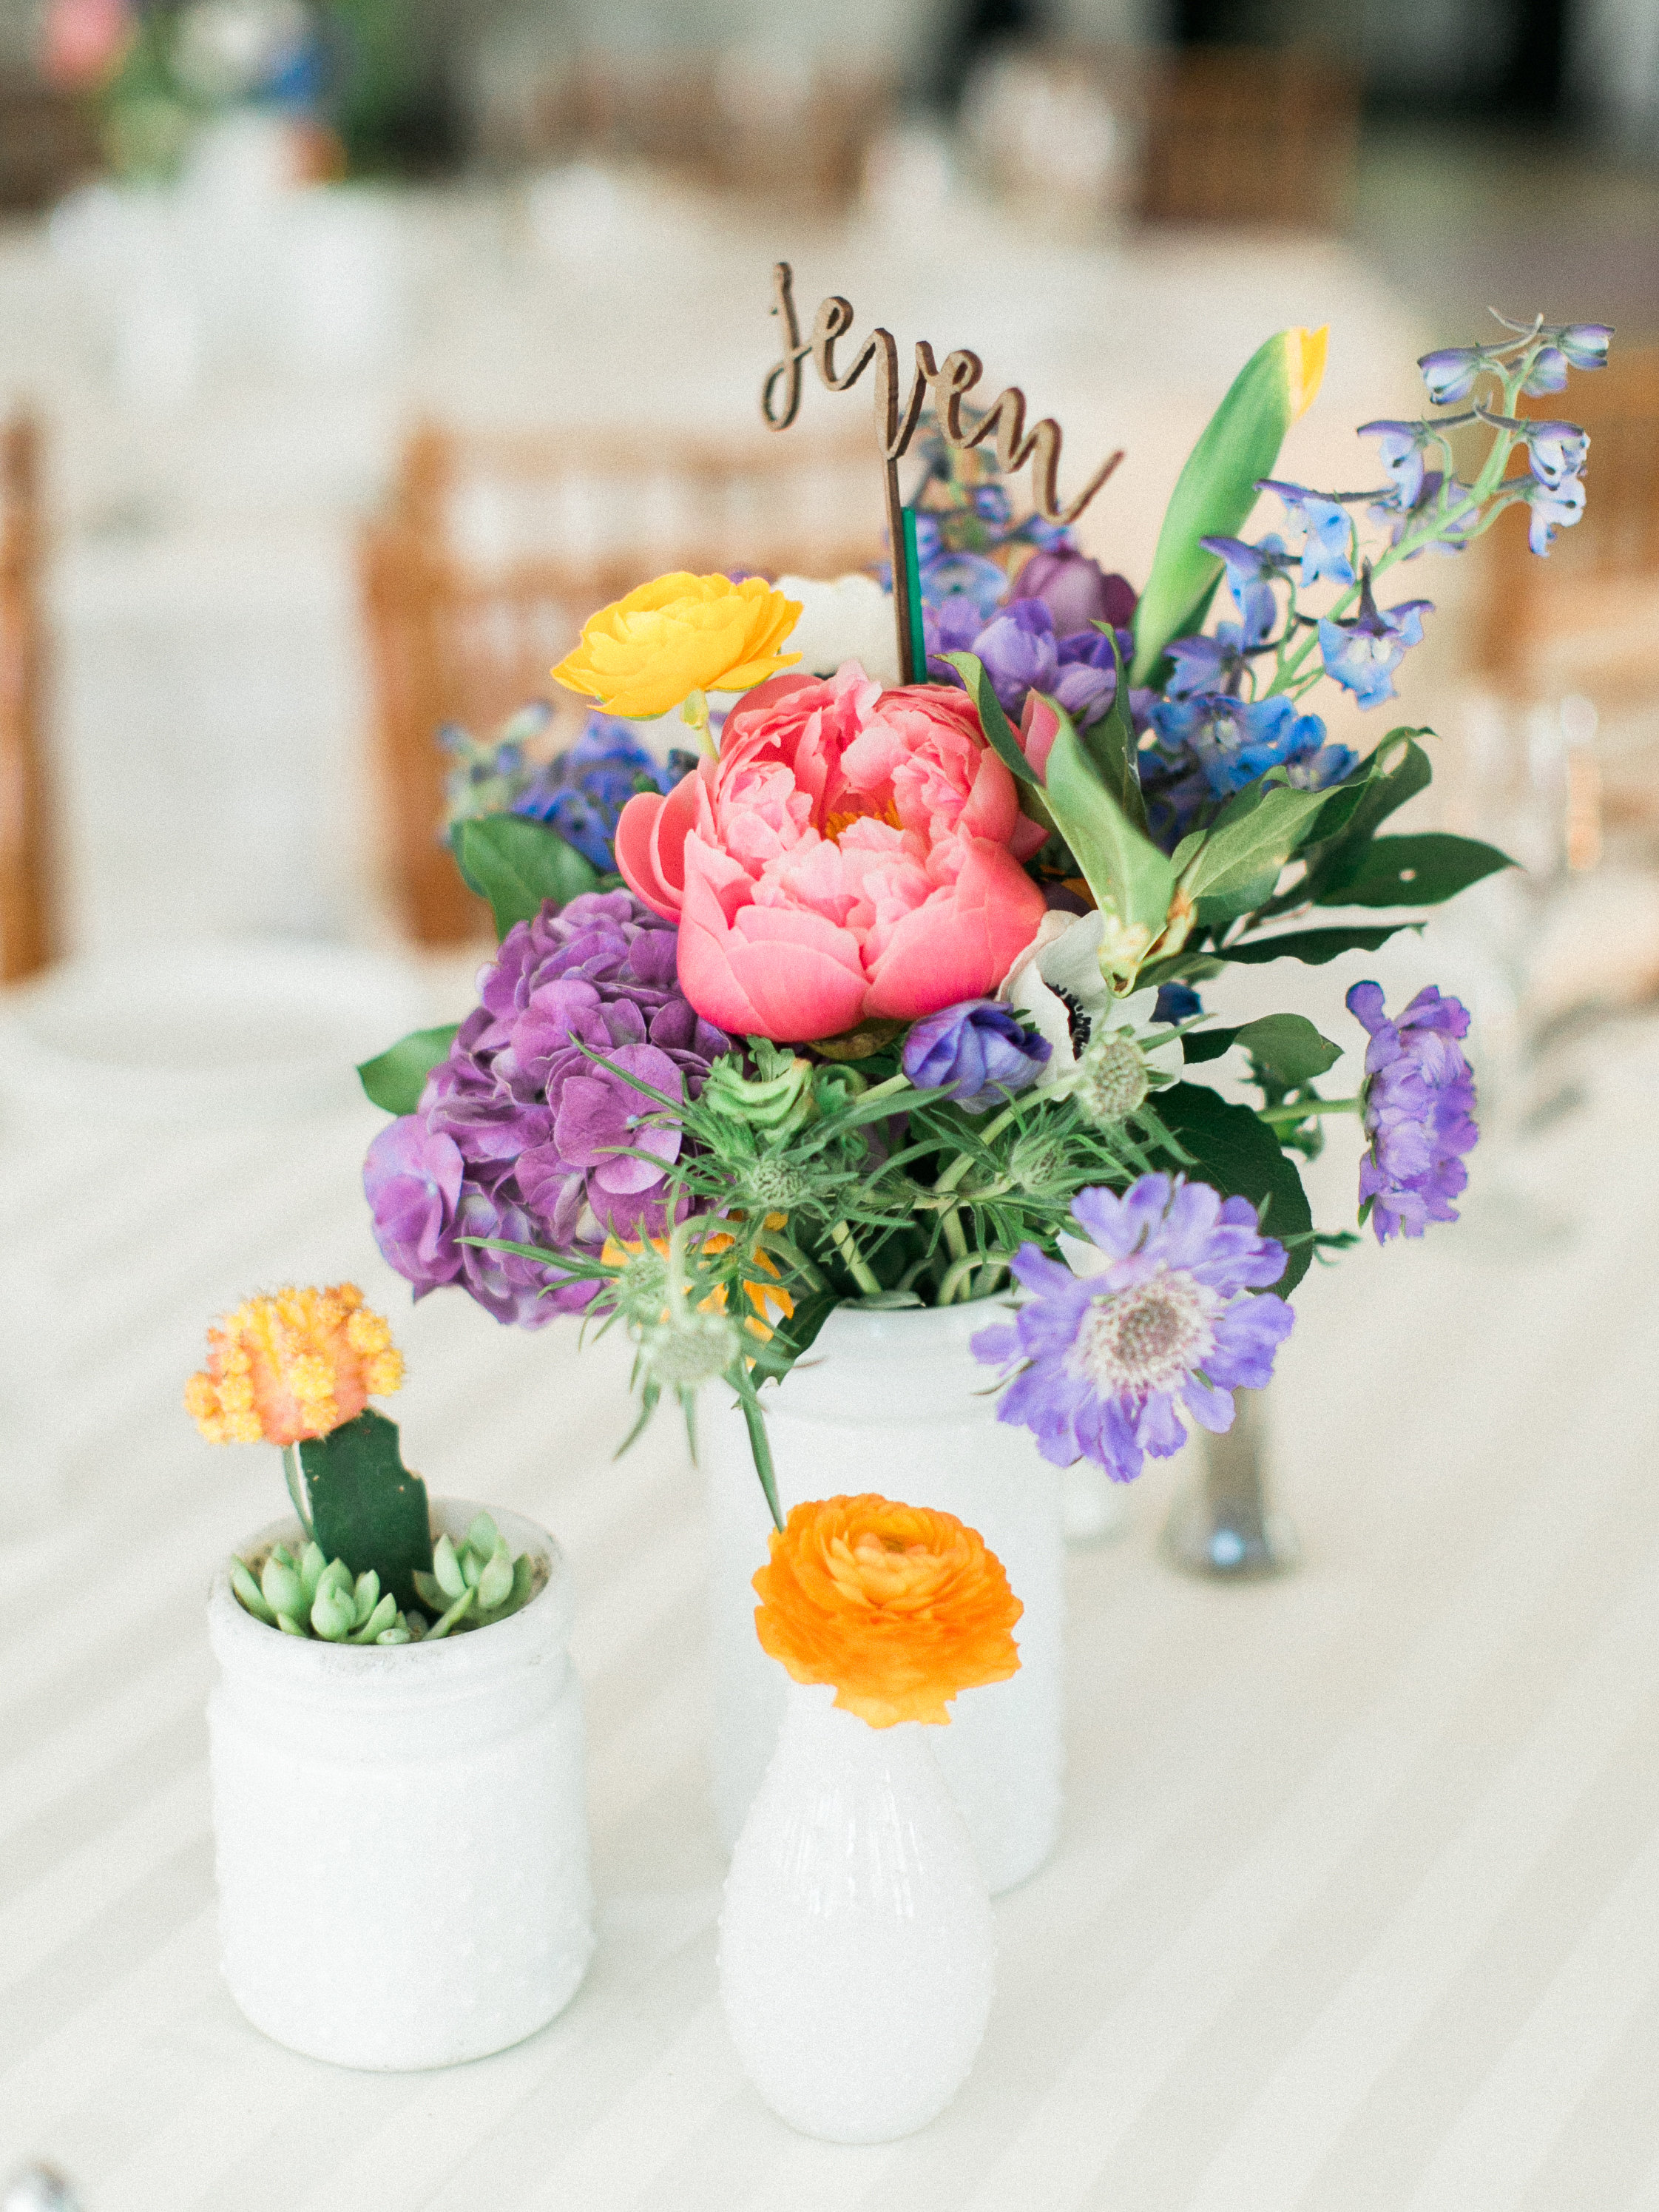 Fiesta Inspired El Chorro Wedding - Trio of colorful centerpieces